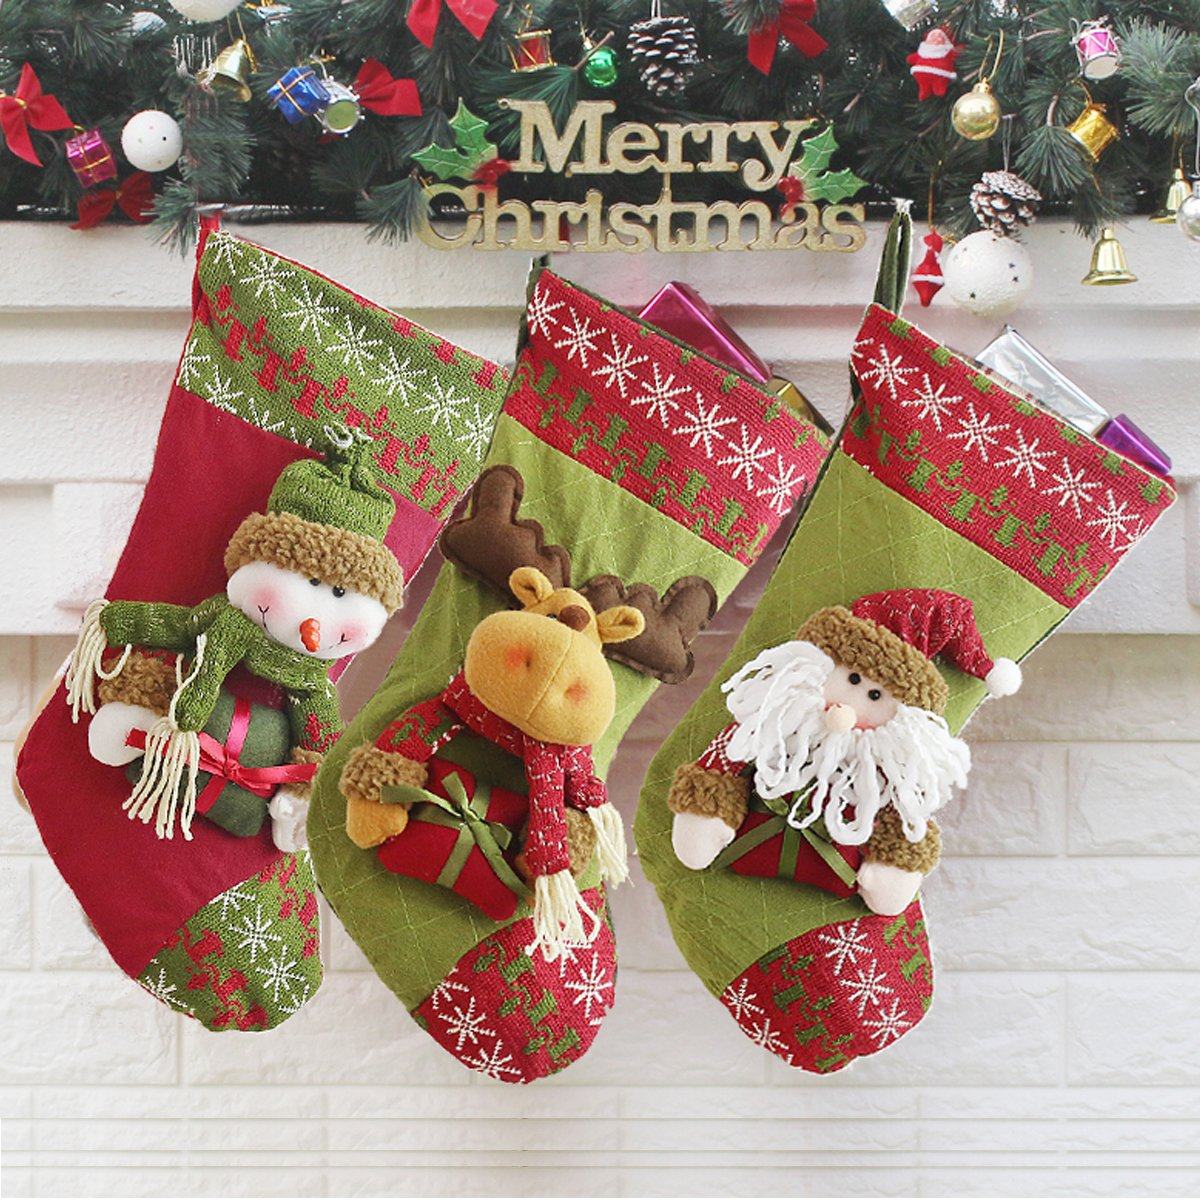 3 PCS Set Christmas Stockings Holiday3D Hangers Holders 18'' Inch Christmas Decorations Santa Claus/Snowman/Reindeer